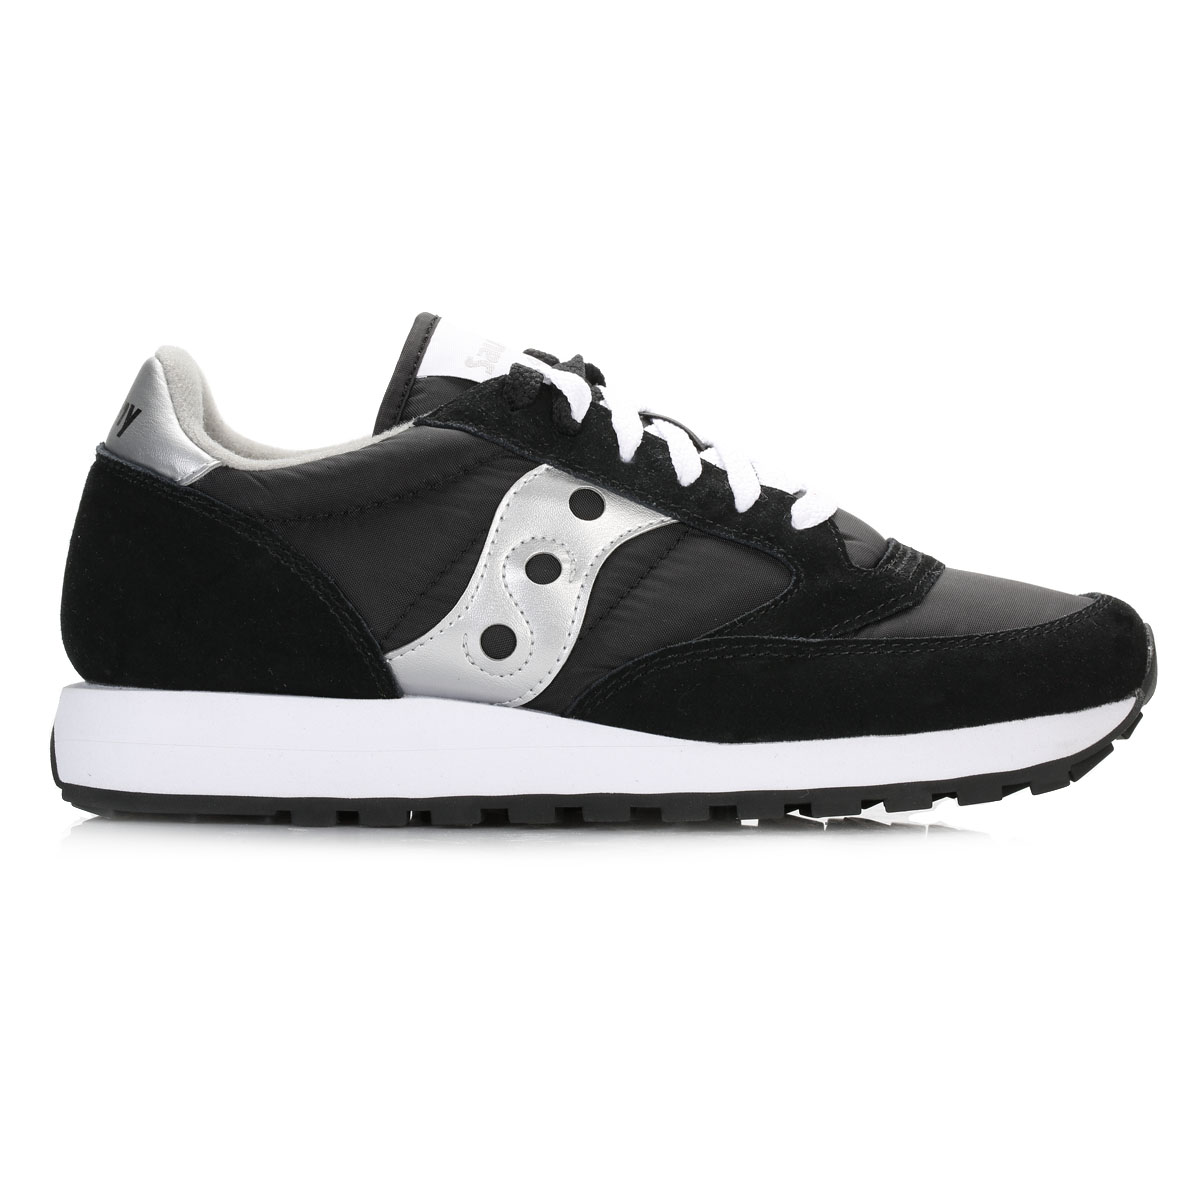 Saucony Womens Trainers, Jazz Jazz Jazz Original, Black & Silver, Suede, Sport shoes 71923c